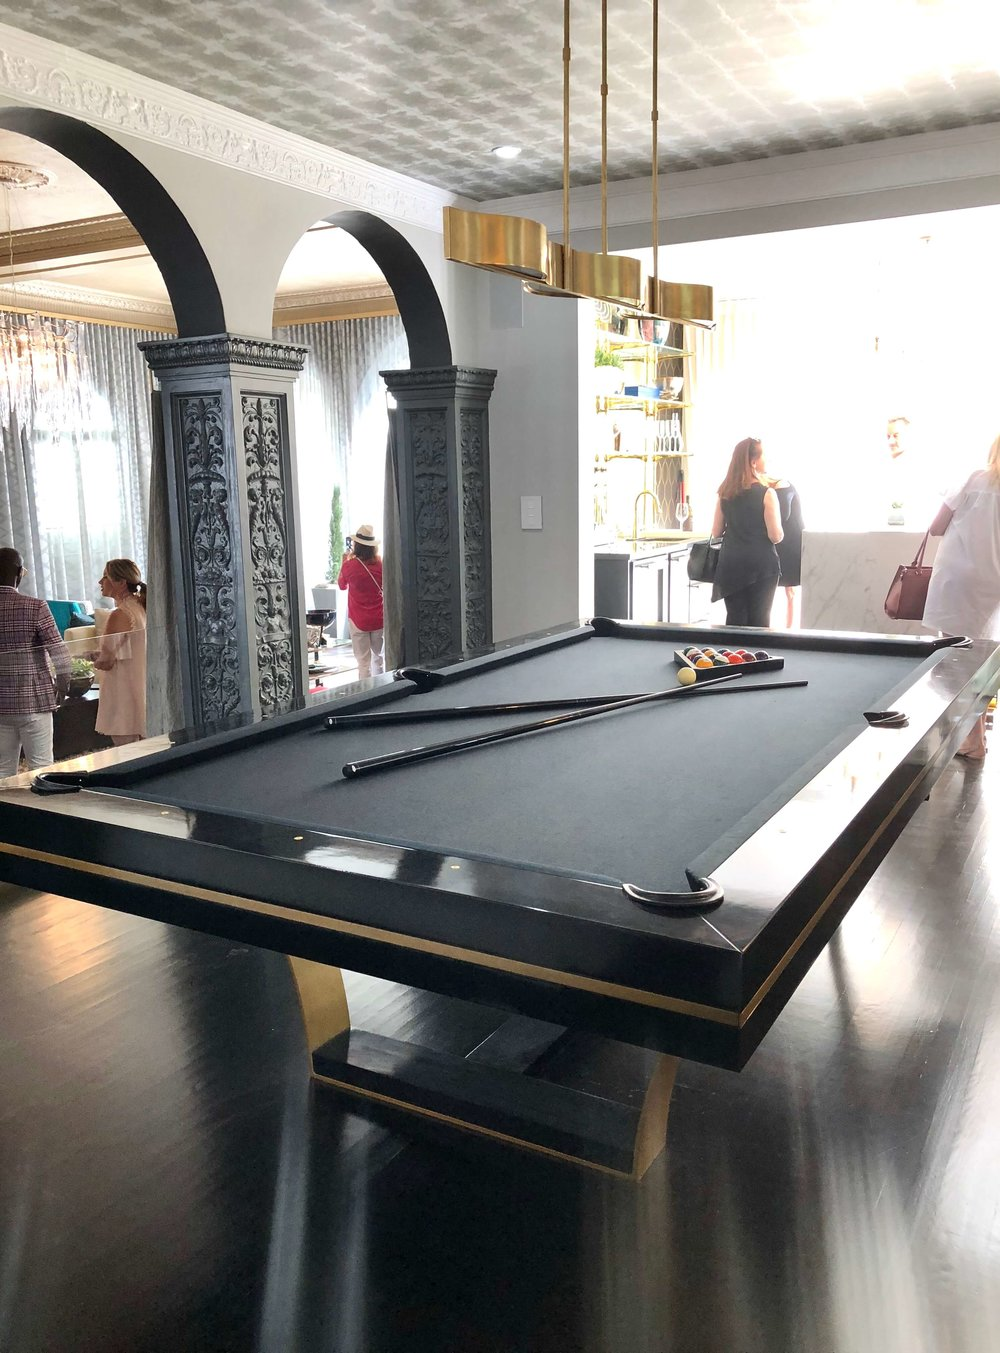 Billiard room with contemporary pool table designed by Designs of the Interior in the Pasadena Showcase House of Design 2018 #billiards #pooltable  #gameroom #gameroomideas